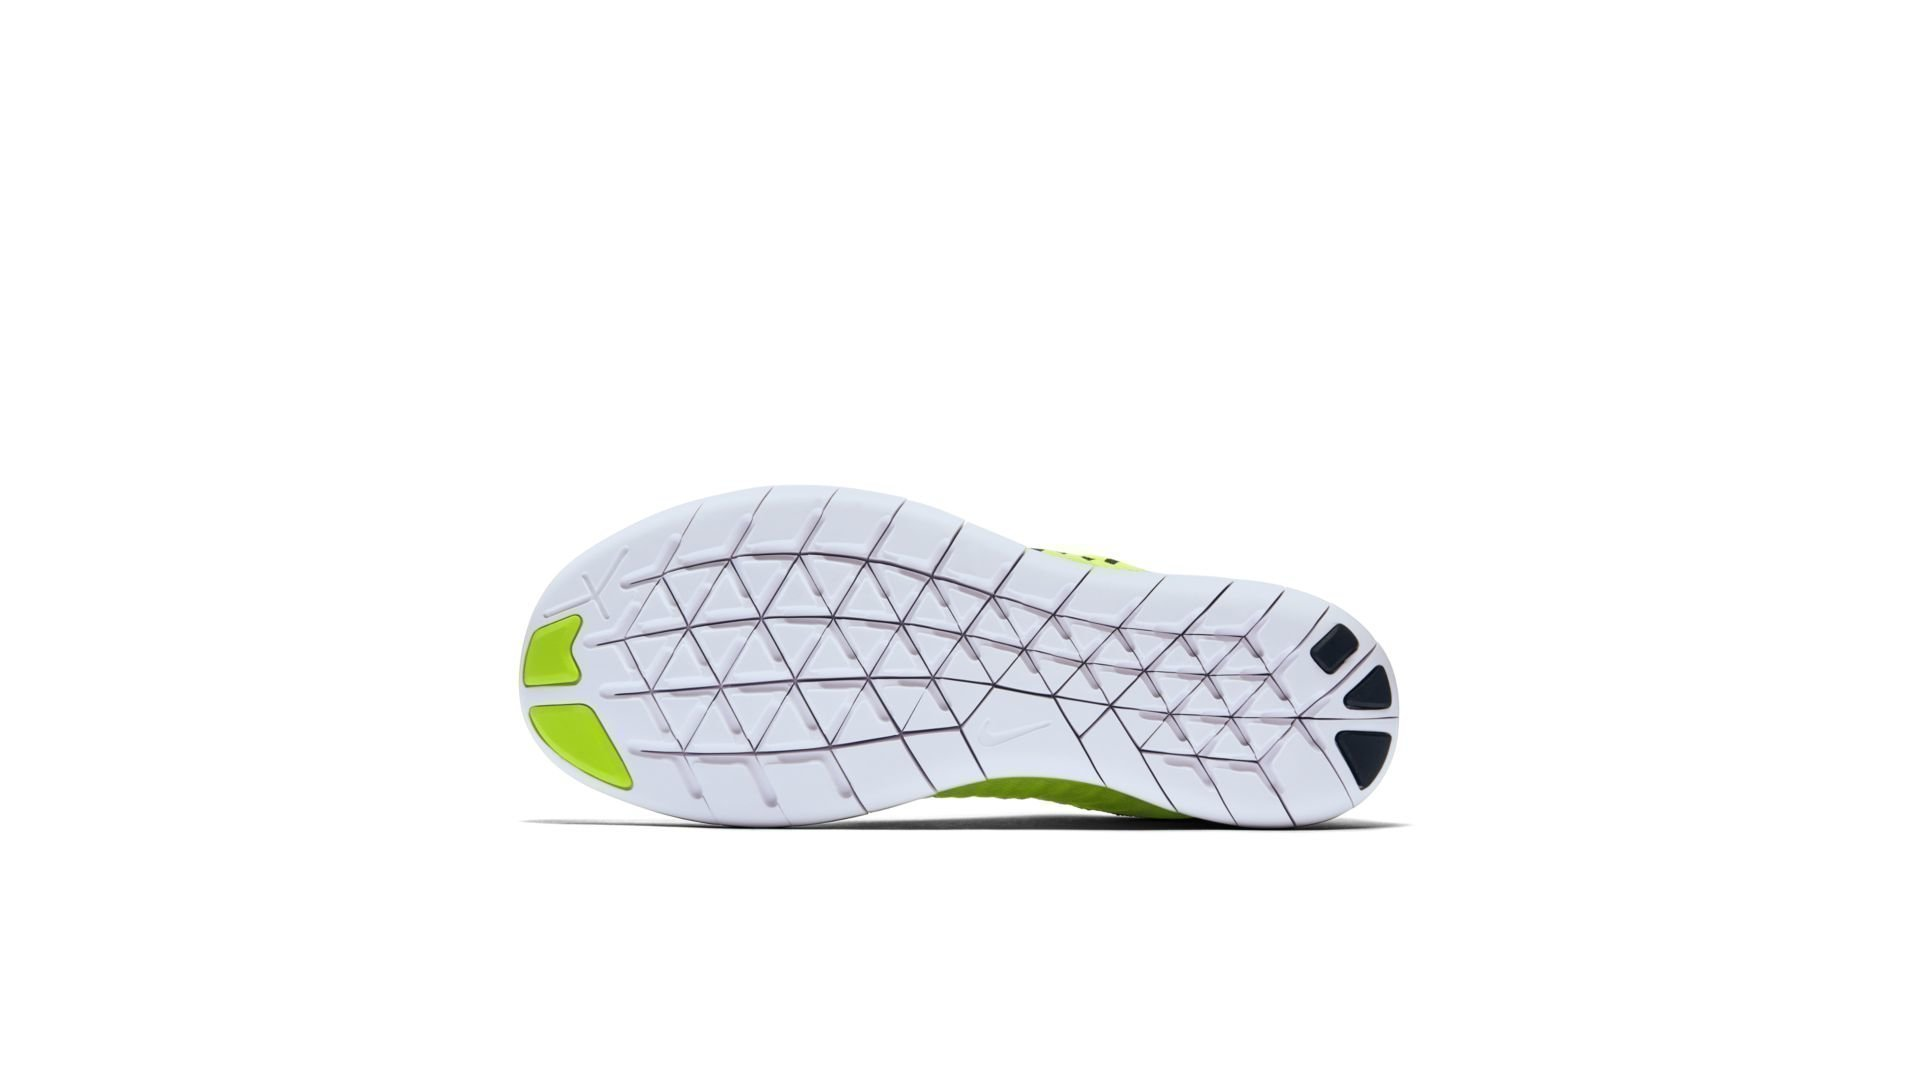 Nike Free RN Flyknit Medals Stand Volt (W) (842546-700)